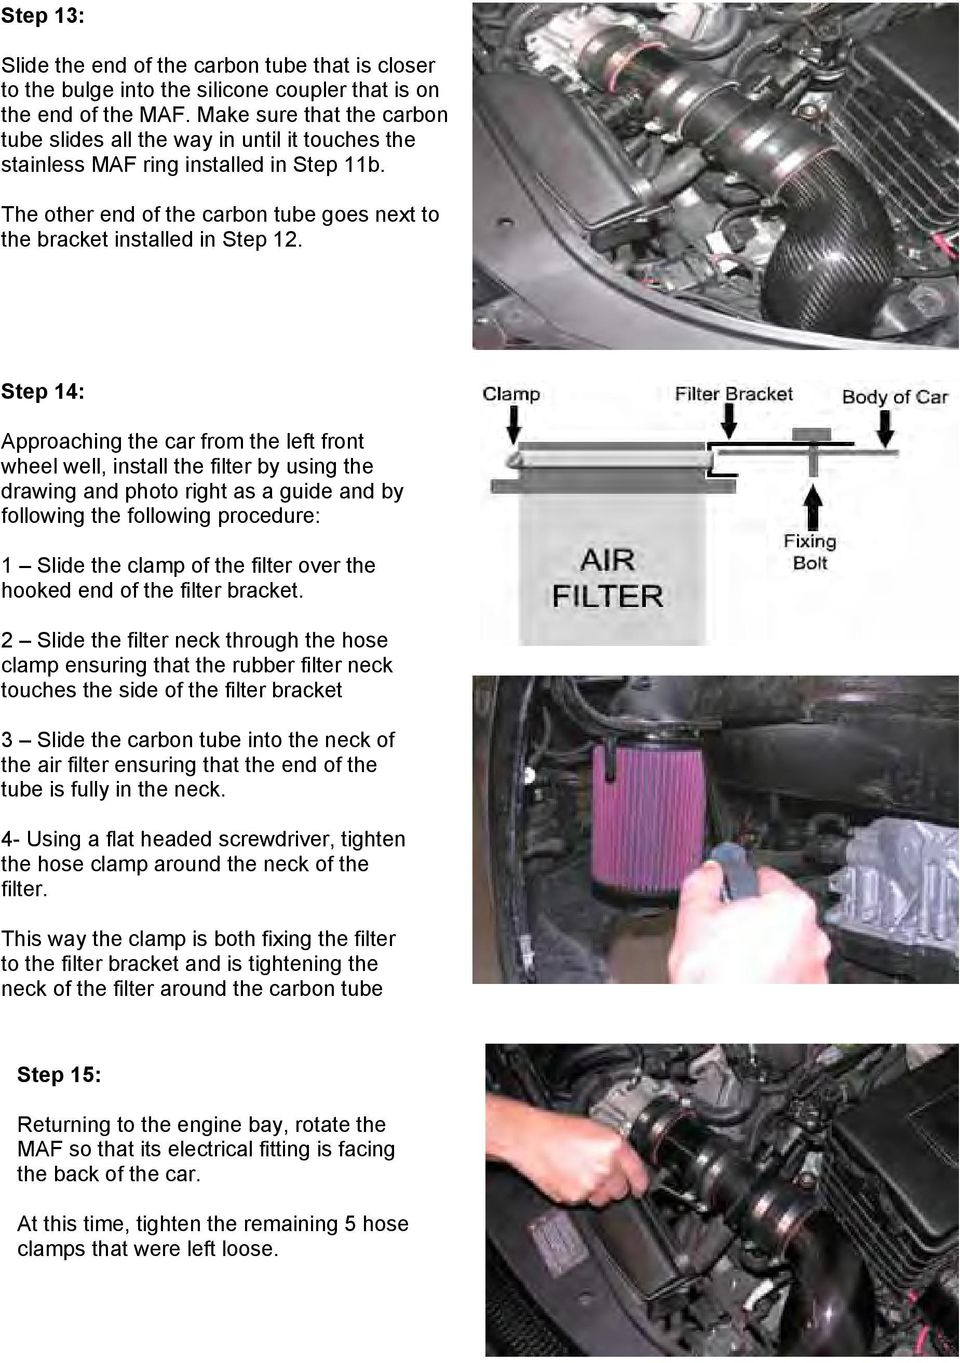 Step 14: Approaching the car from the left front wheel well, install the filter by using the drawing and photo right as a guide and by following the following procedure: 1 Slide the clamp of the